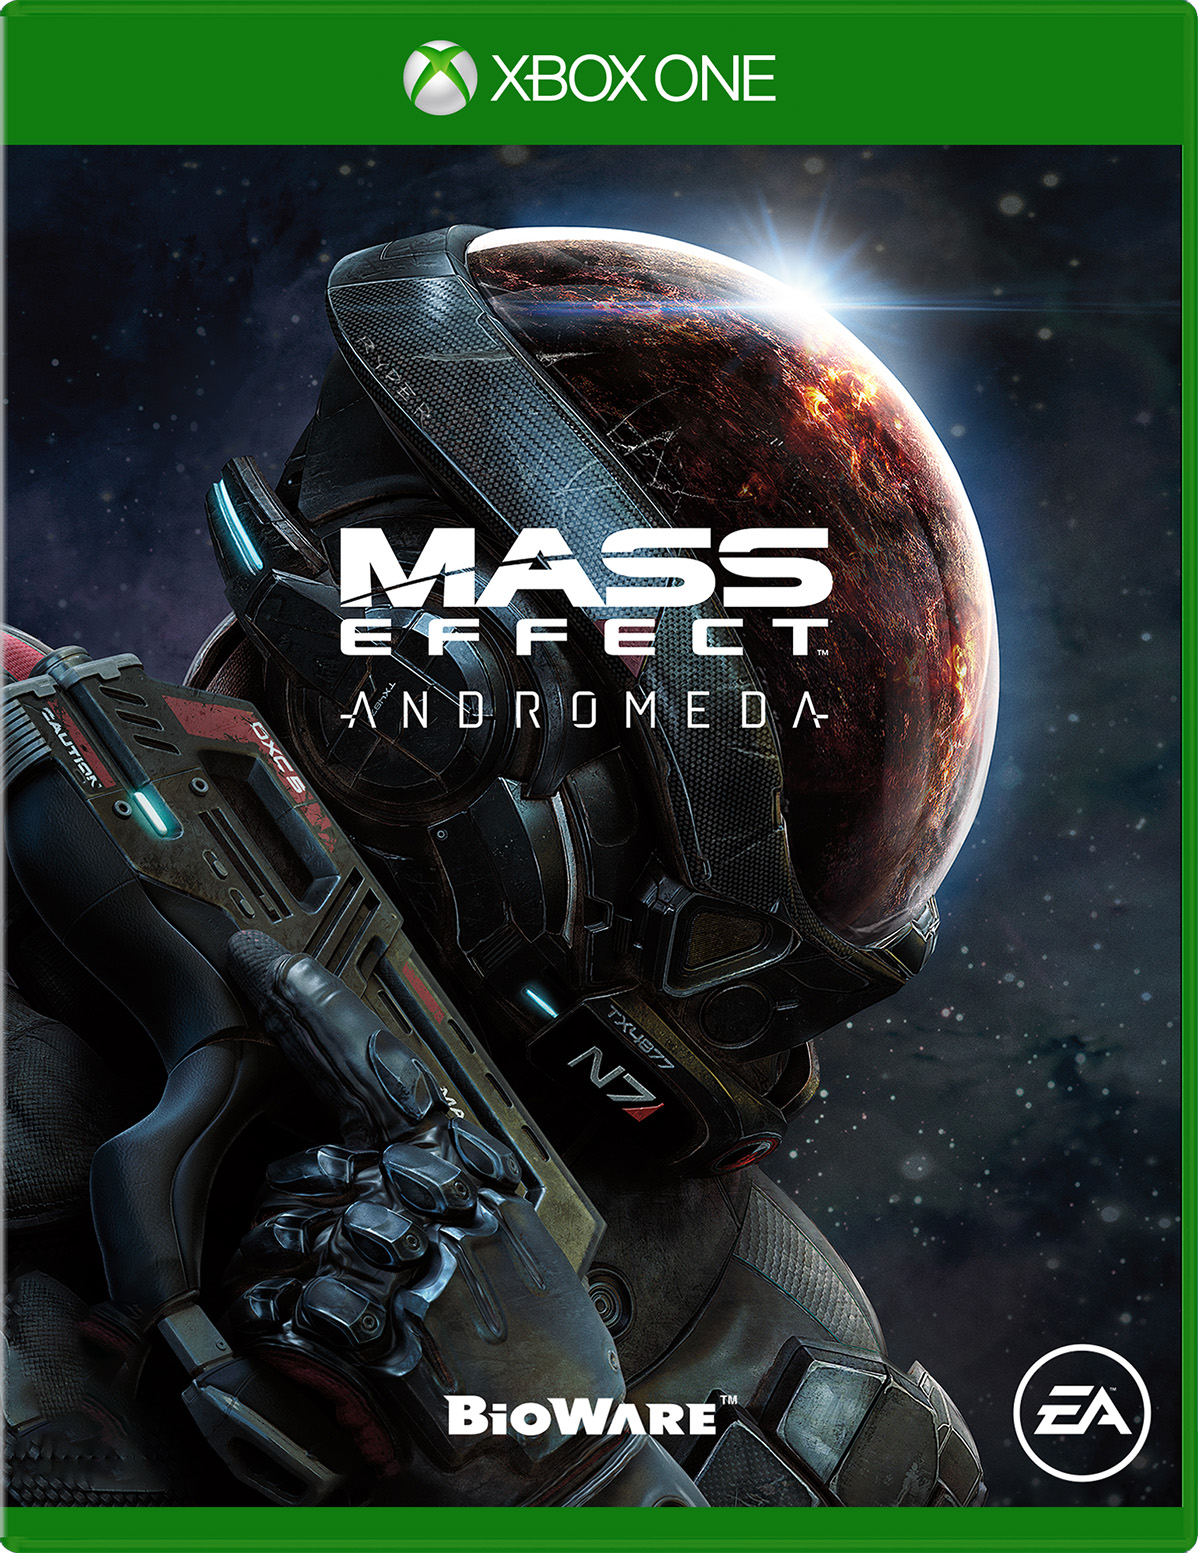 Mass Effect: Andromeda for Xbox One